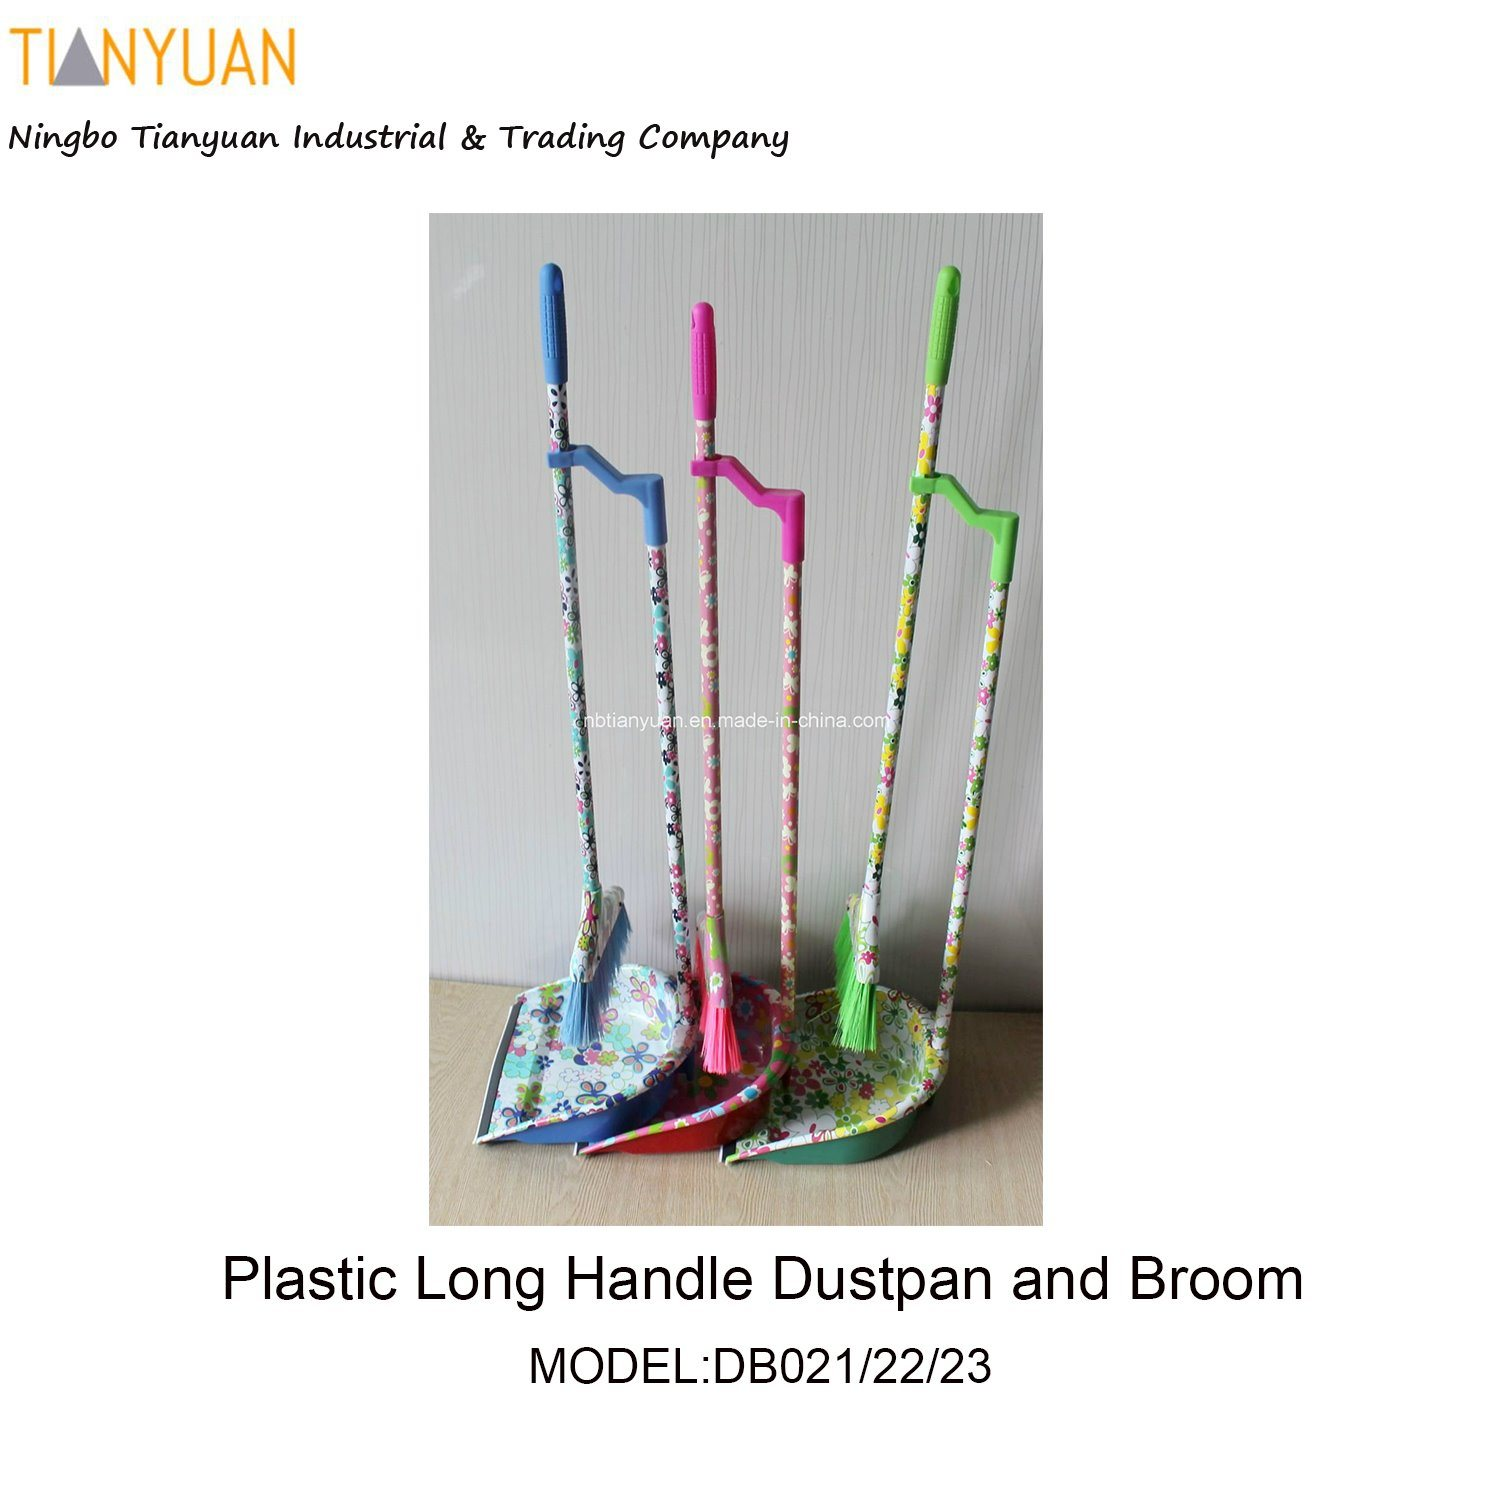 Plastic Long Handle Dustpan and Broom with Printing